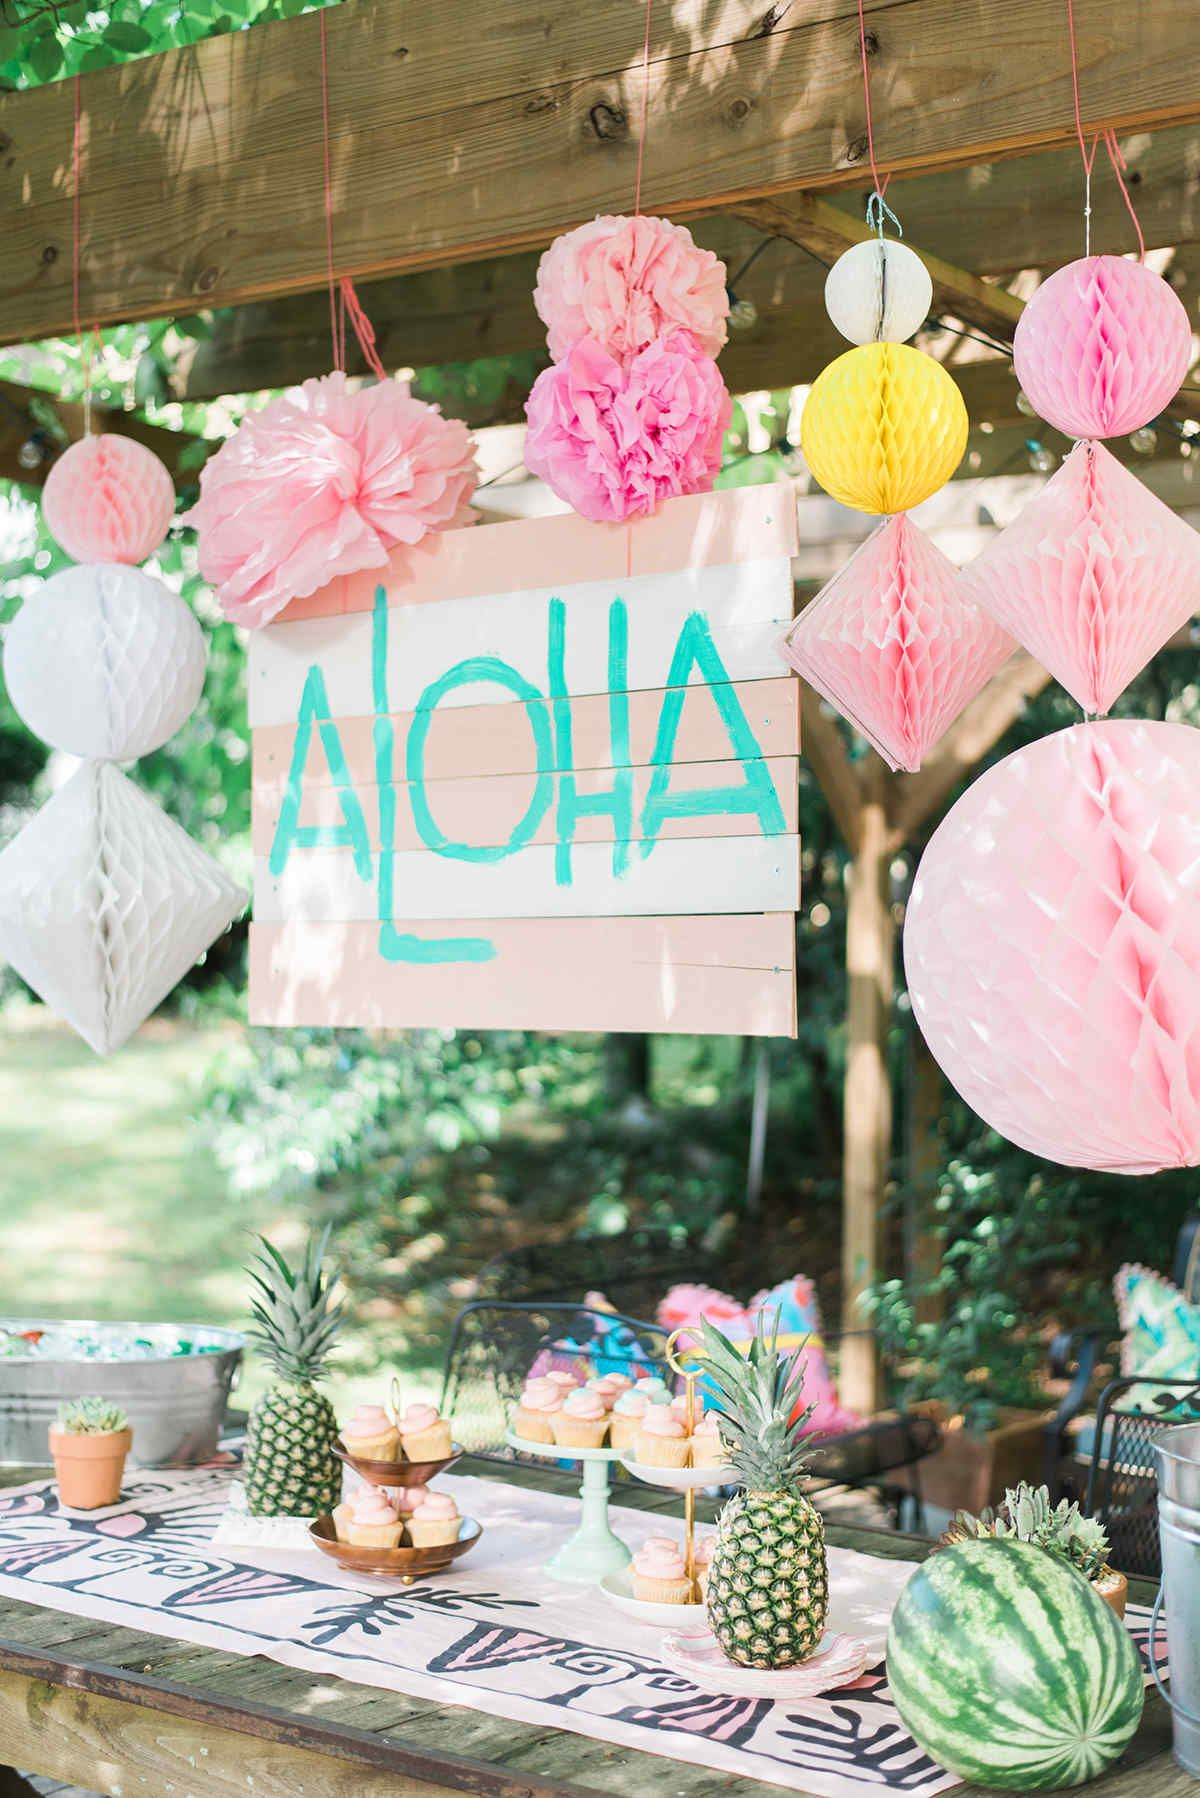 Decoration Hawaienne Pour Fete End Of The Year Luau Party Déco Anniversaire Hawai Fiesta